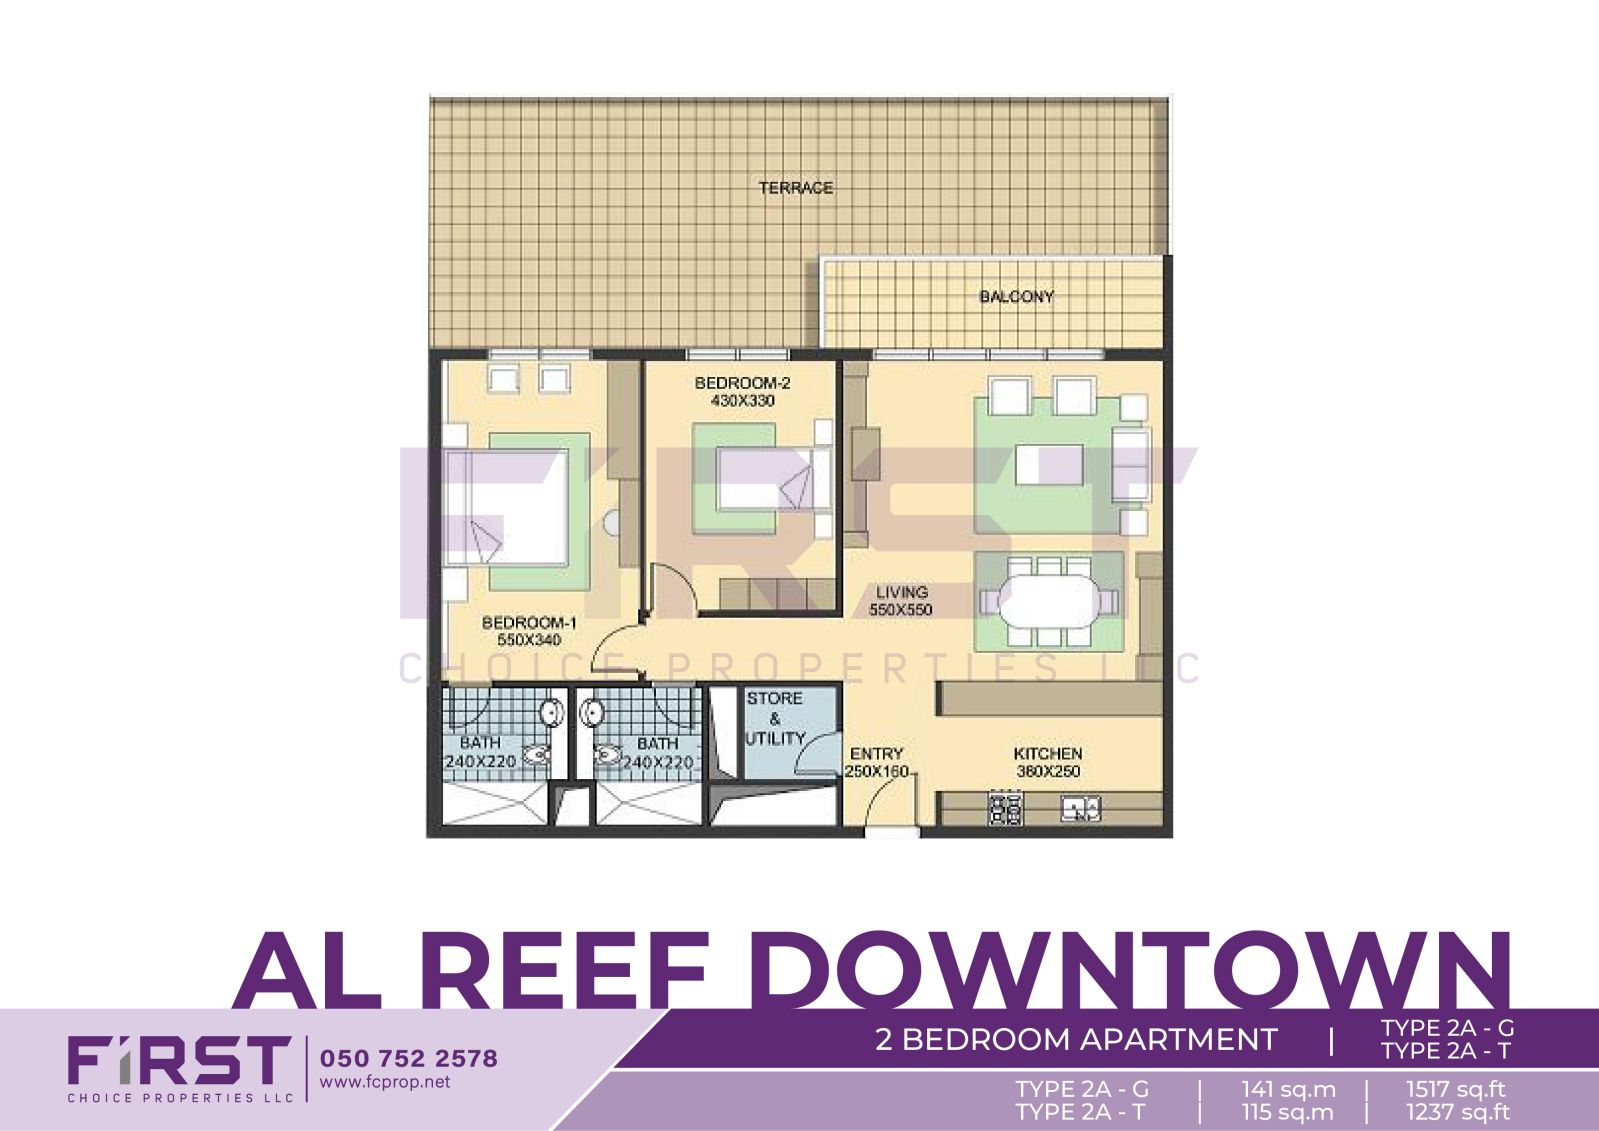 Floor Plan of 2 Bedroom Apartment TYPE 2A-G in Al Reef Downtown Al Reef Abu Dhabi UAE 141 sq.m 1517 sq.ft T 115 sq.m 1237 sq.ft.jpg